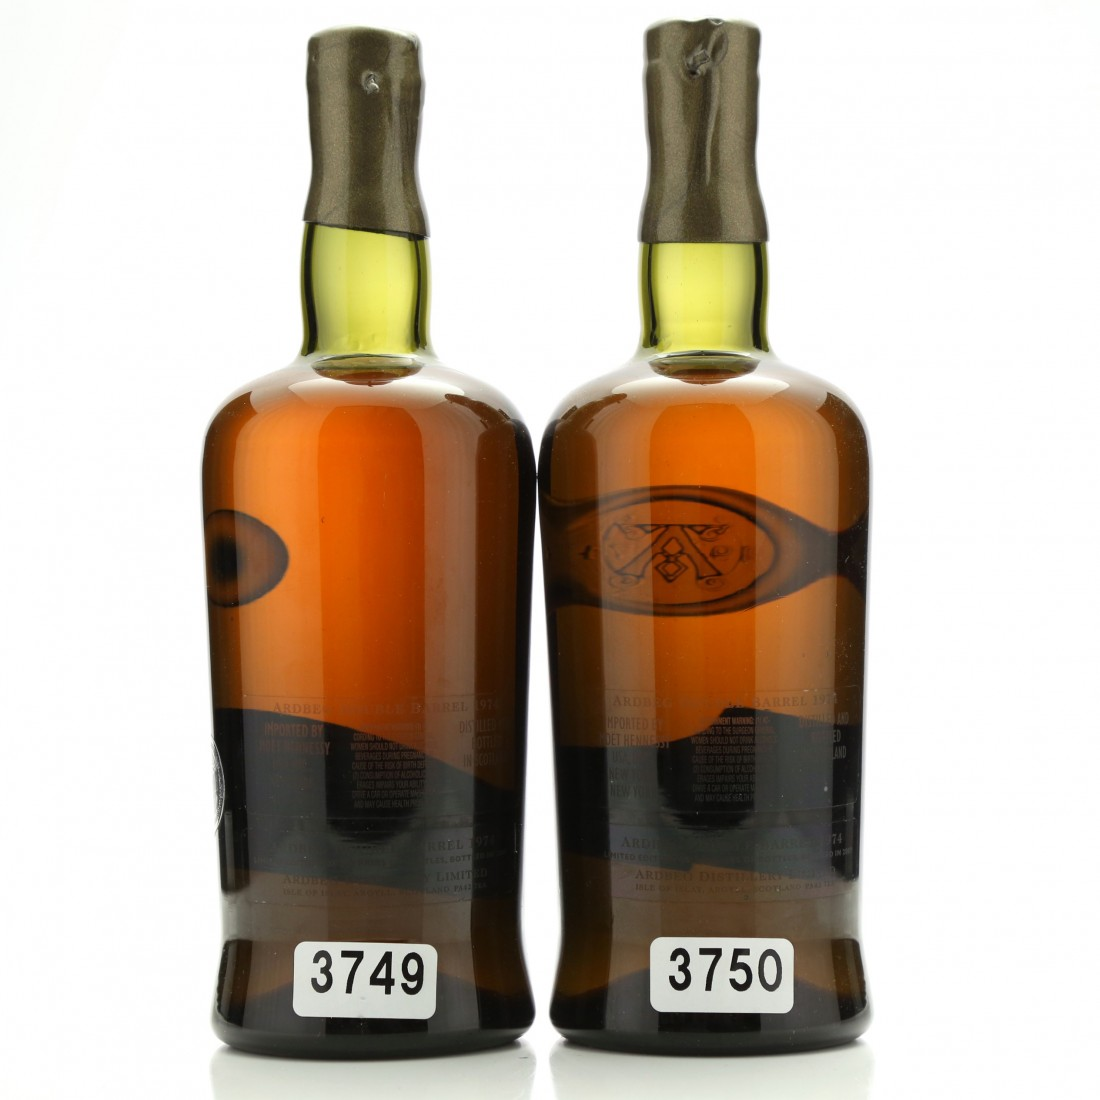 Ardbeg 1974 Double Barrel 2 x 75cl / US Import